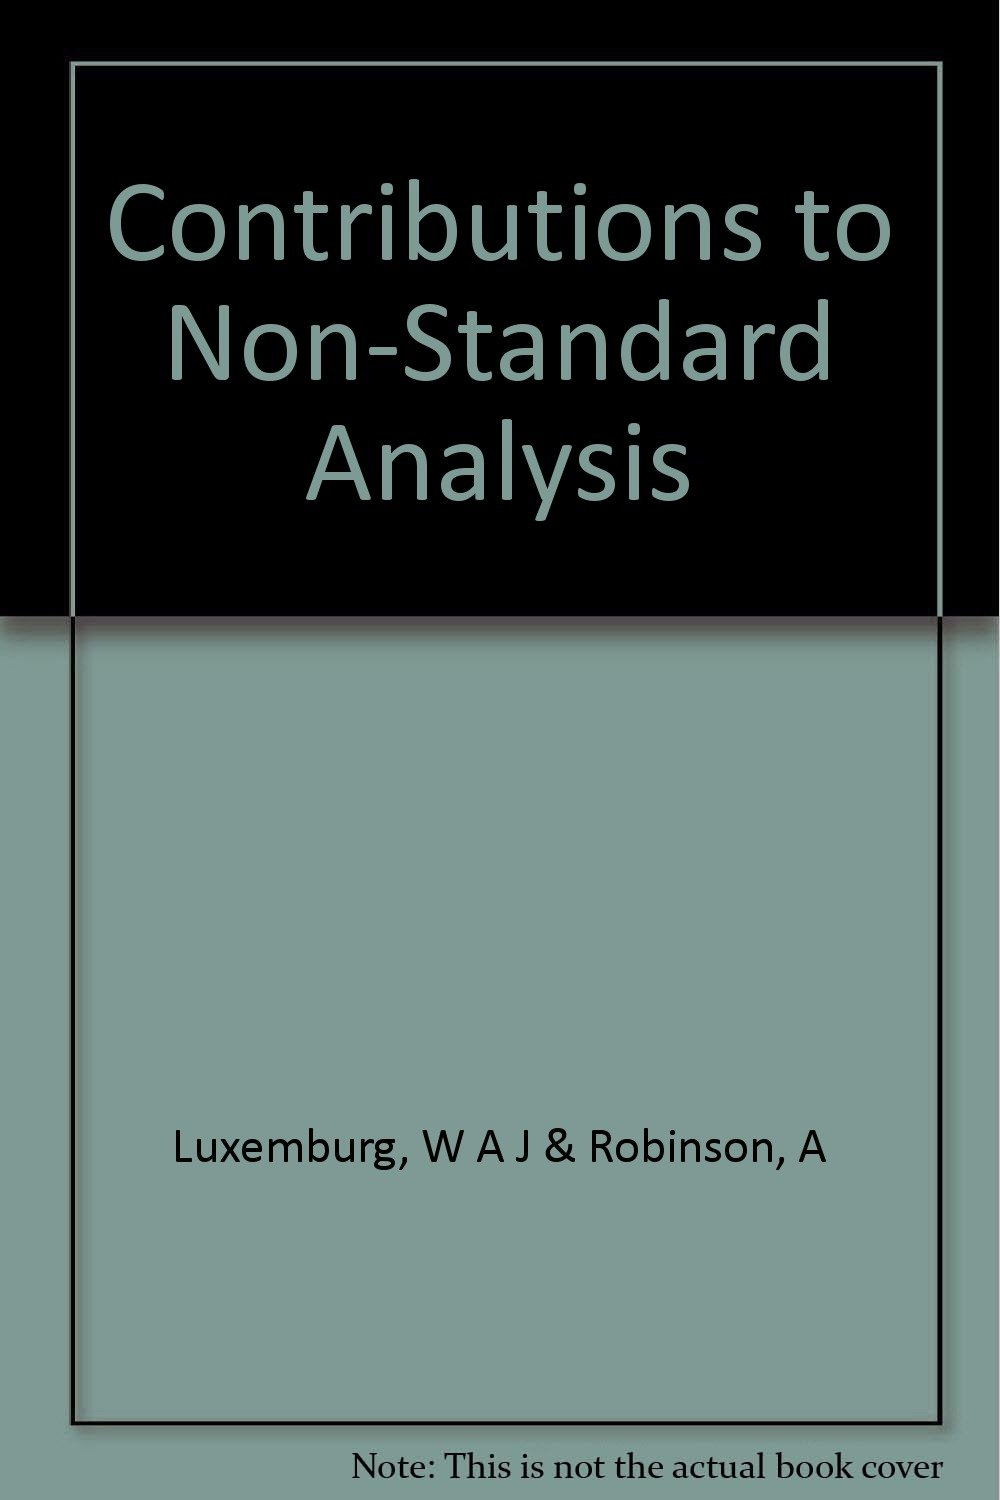 Contributions to Non-Standard Analysis